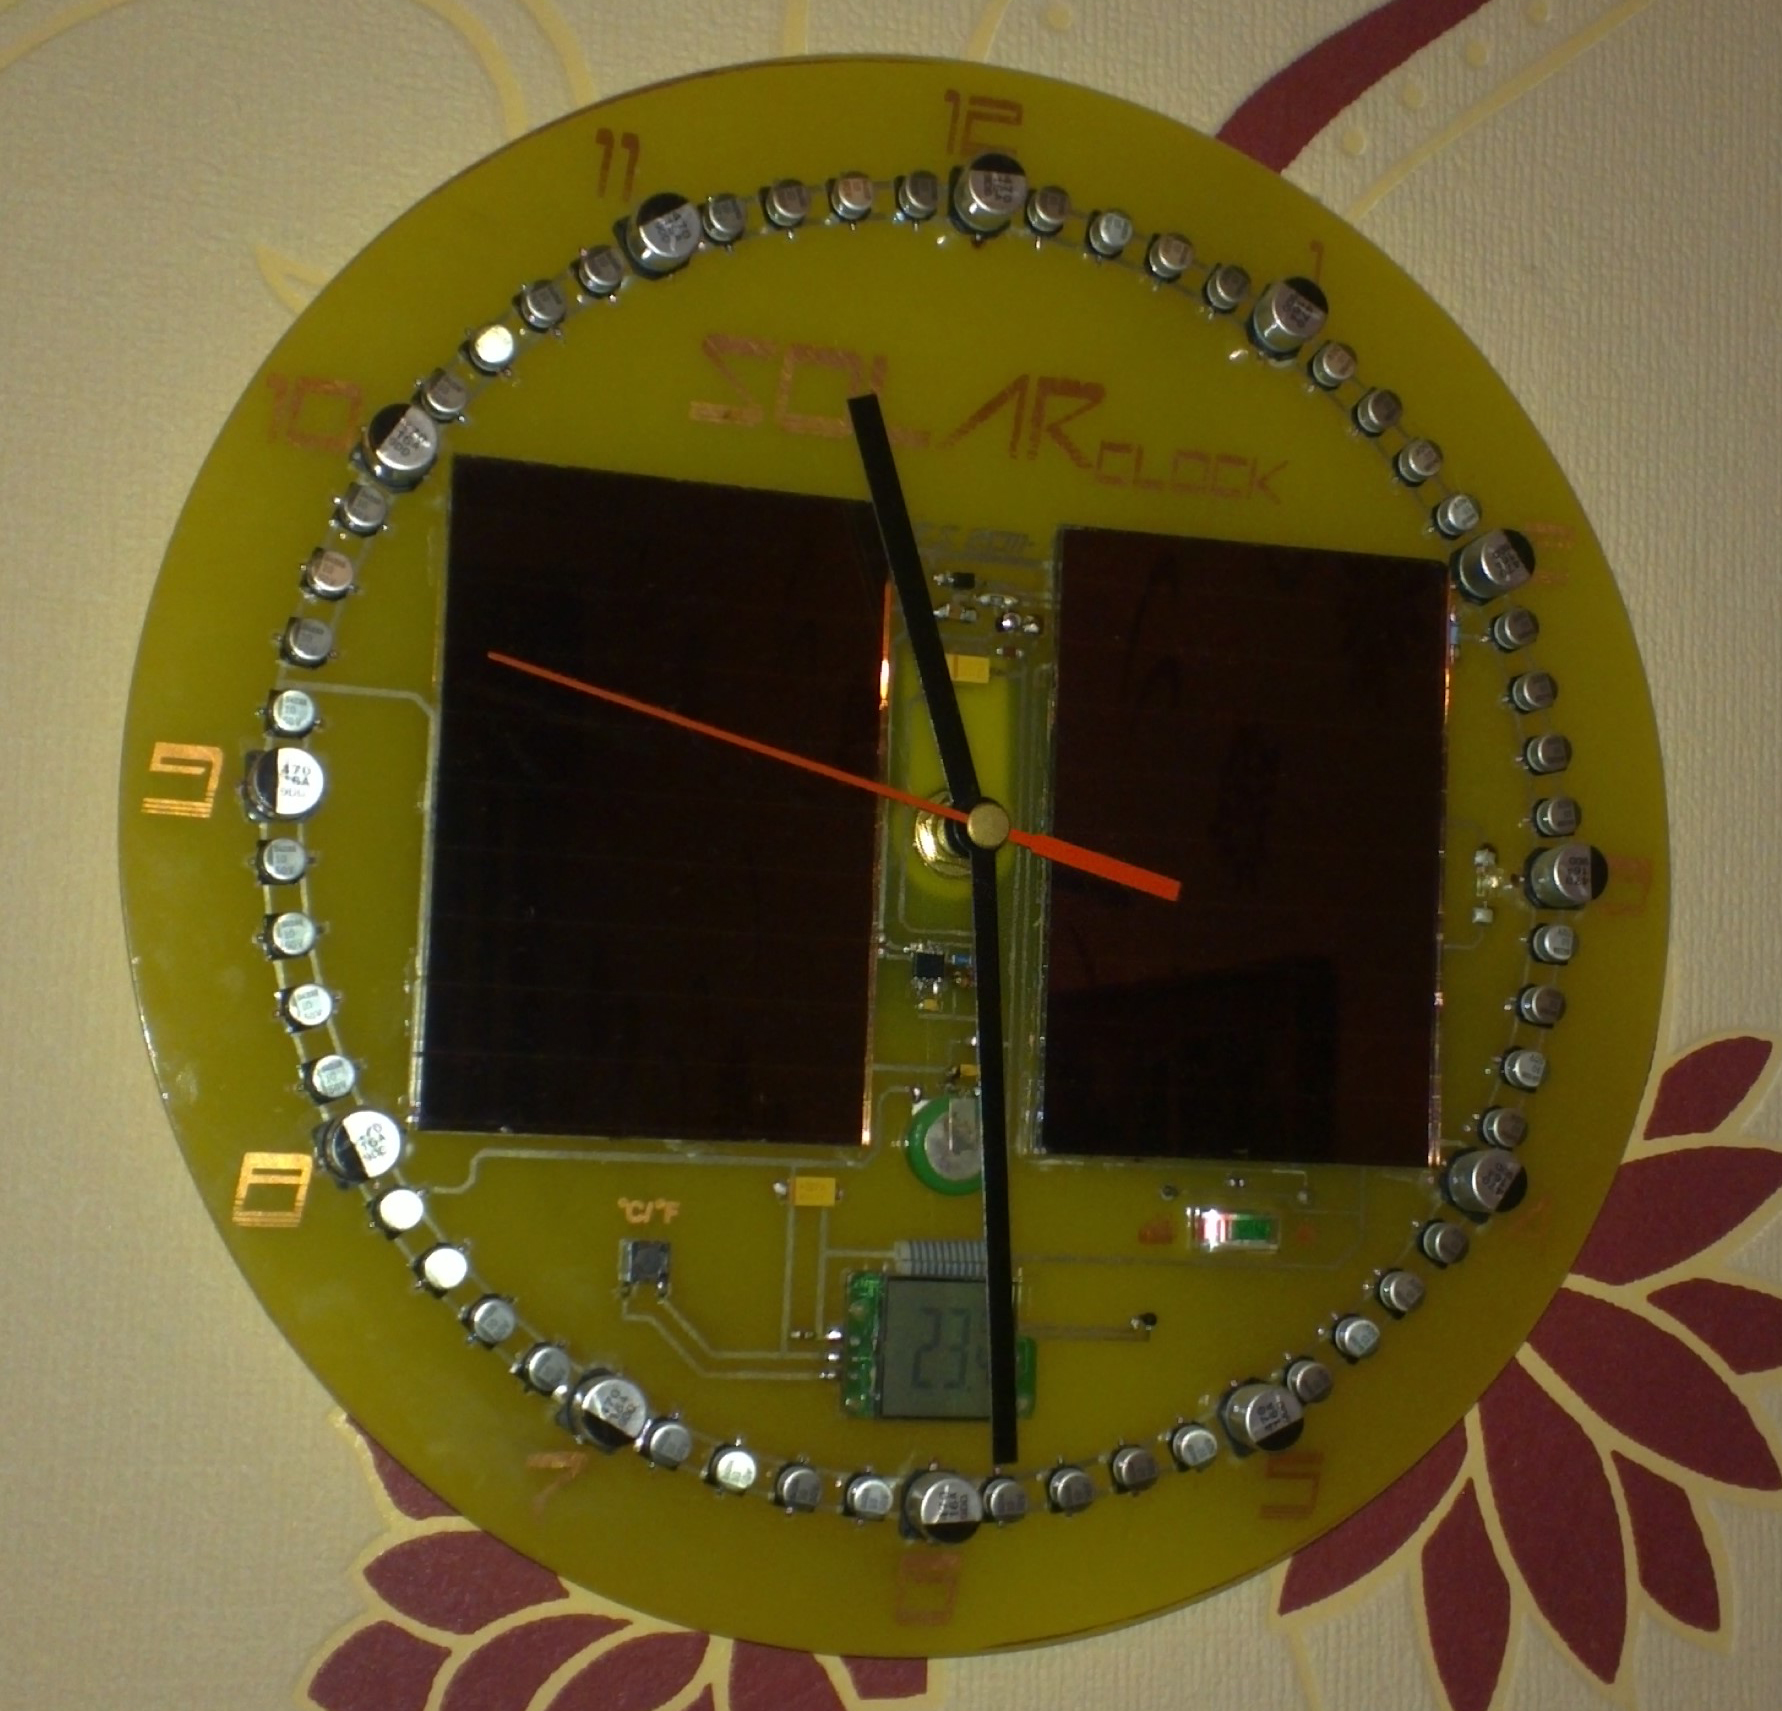 Clock Uses Capacitors To Store Energy and Mark Time